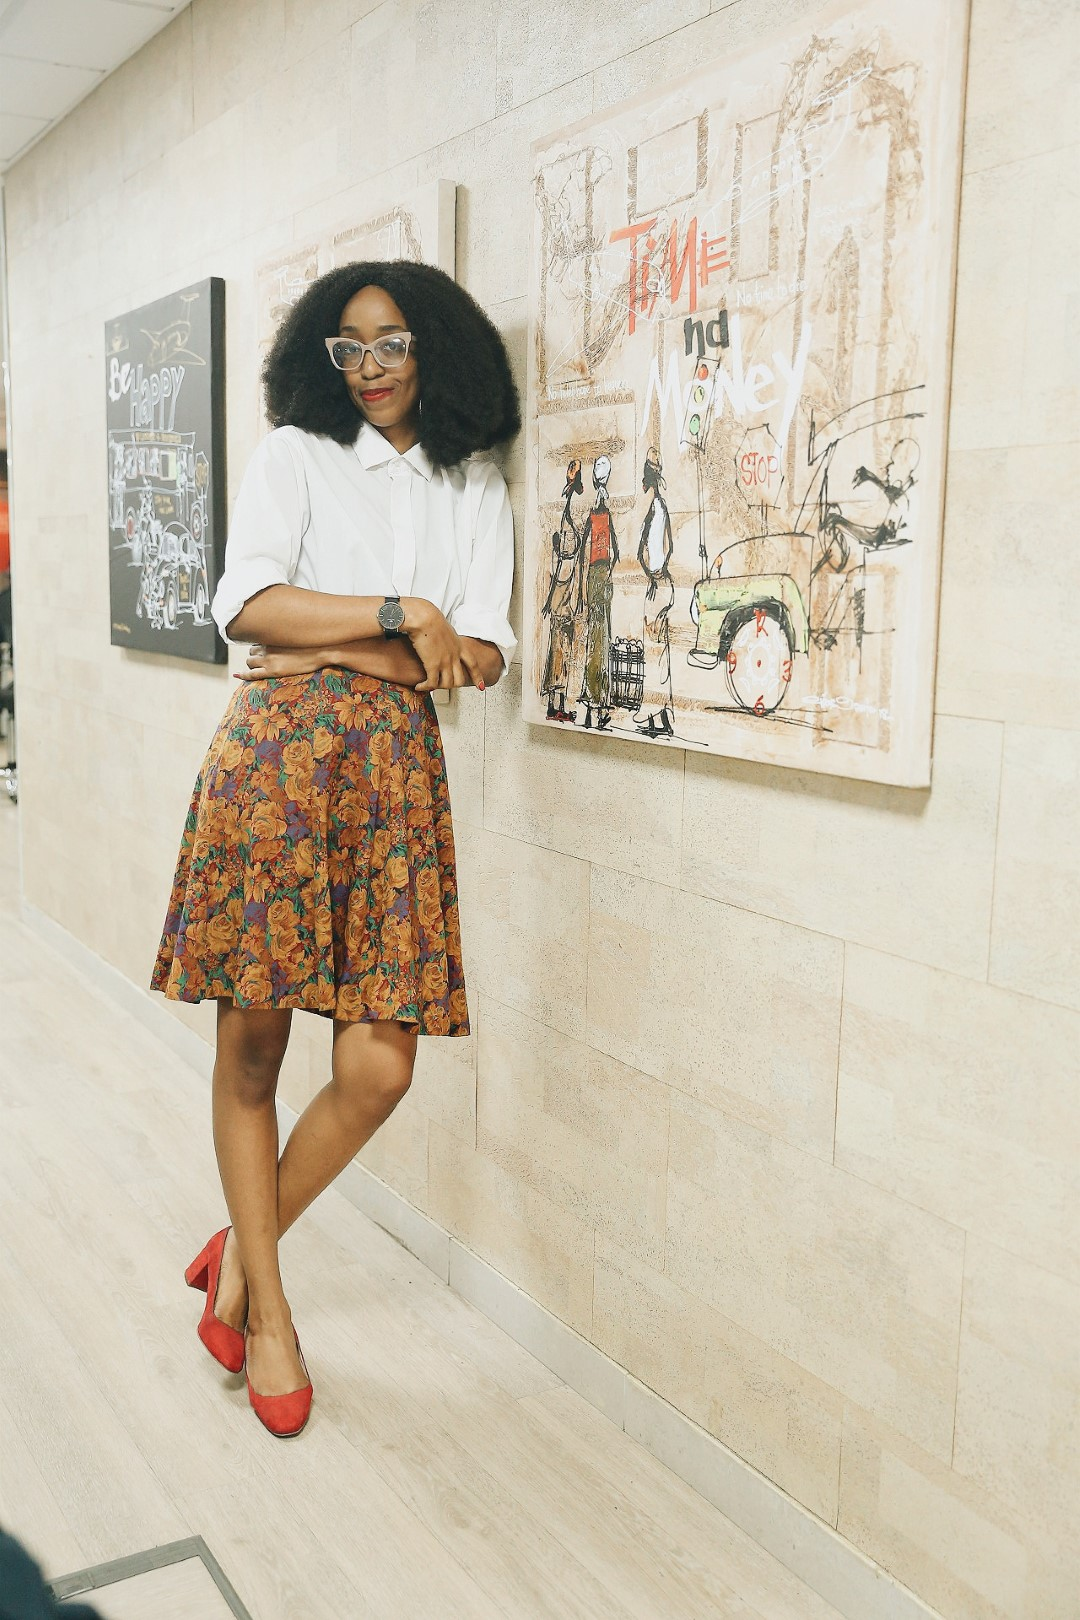 work style essential -Cassie Daves wearing a white shirt and floral skirt